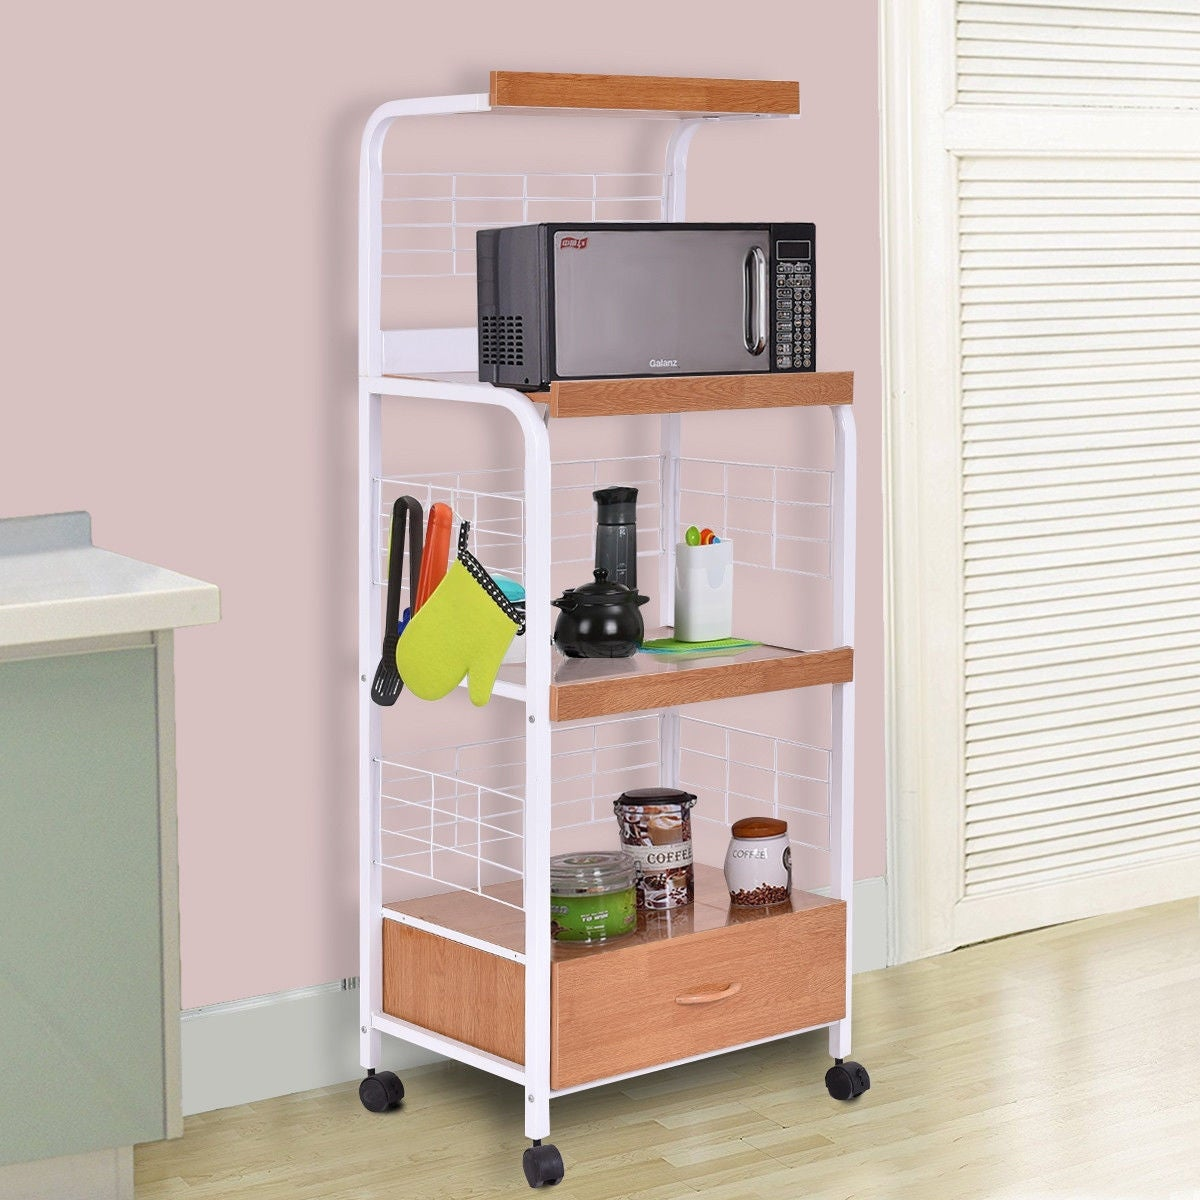 Shop costway 62 bakers rack microwave stand rolling kitchen storage cart w electric outlet free shipping today overstock com 16315093